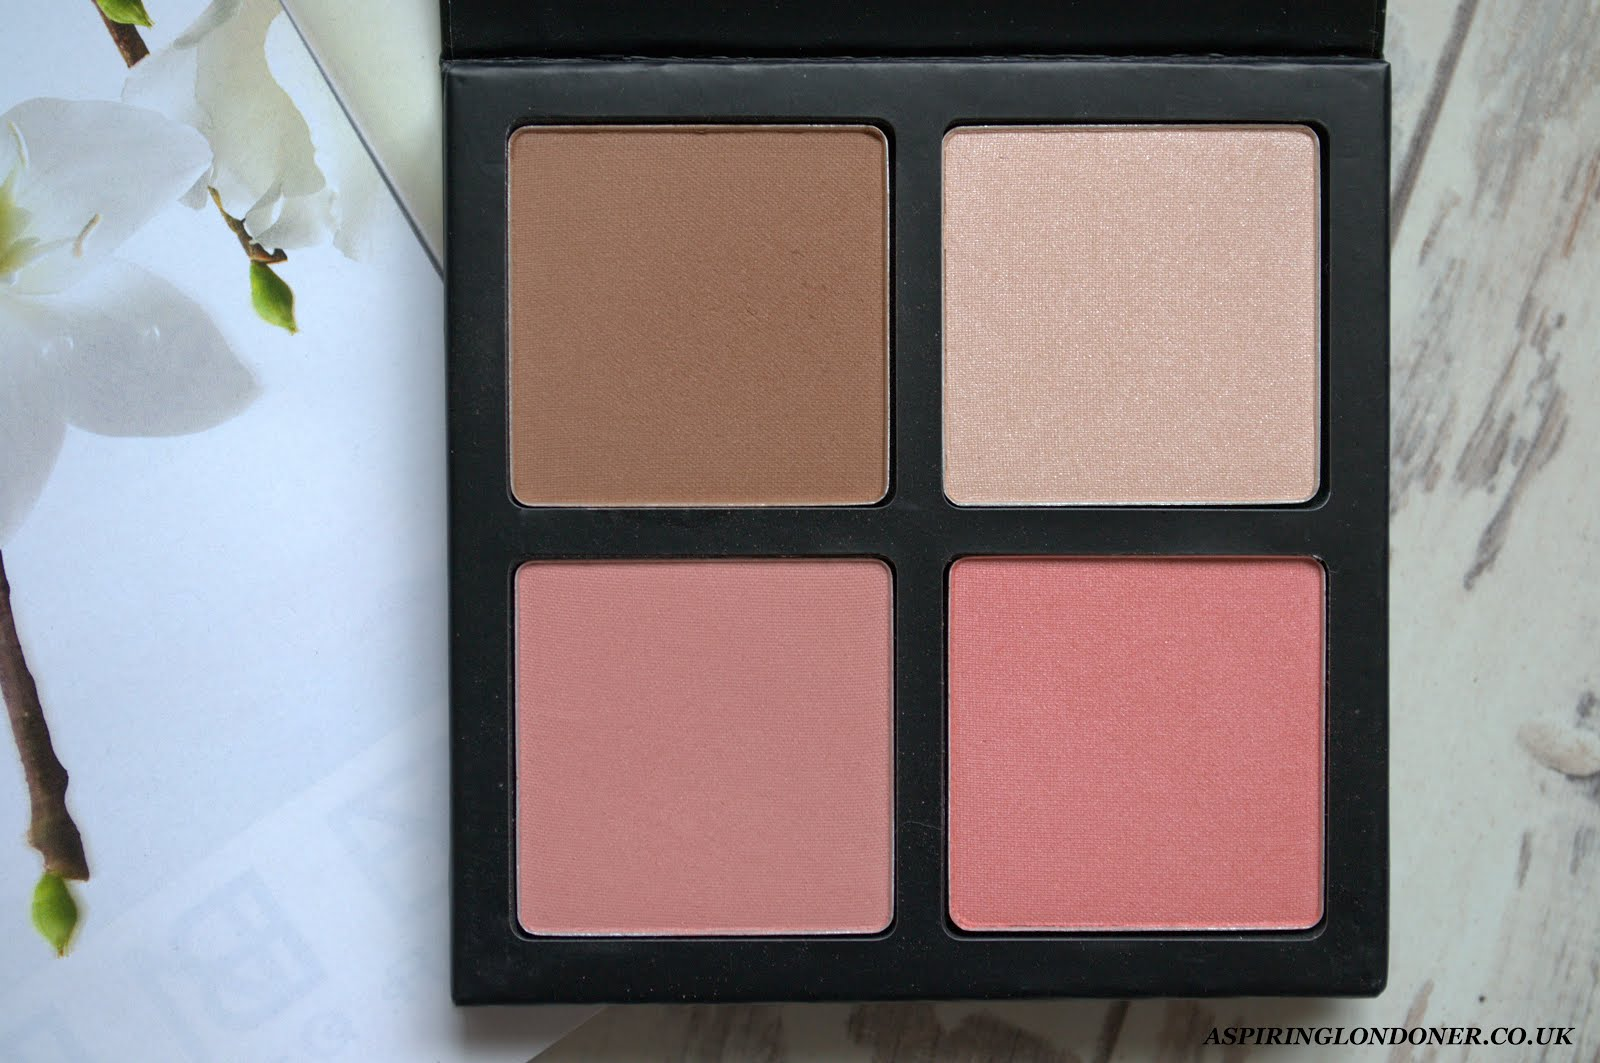 Collection Blush & Glow Palette Review+Swatch - Aspiring Londoner